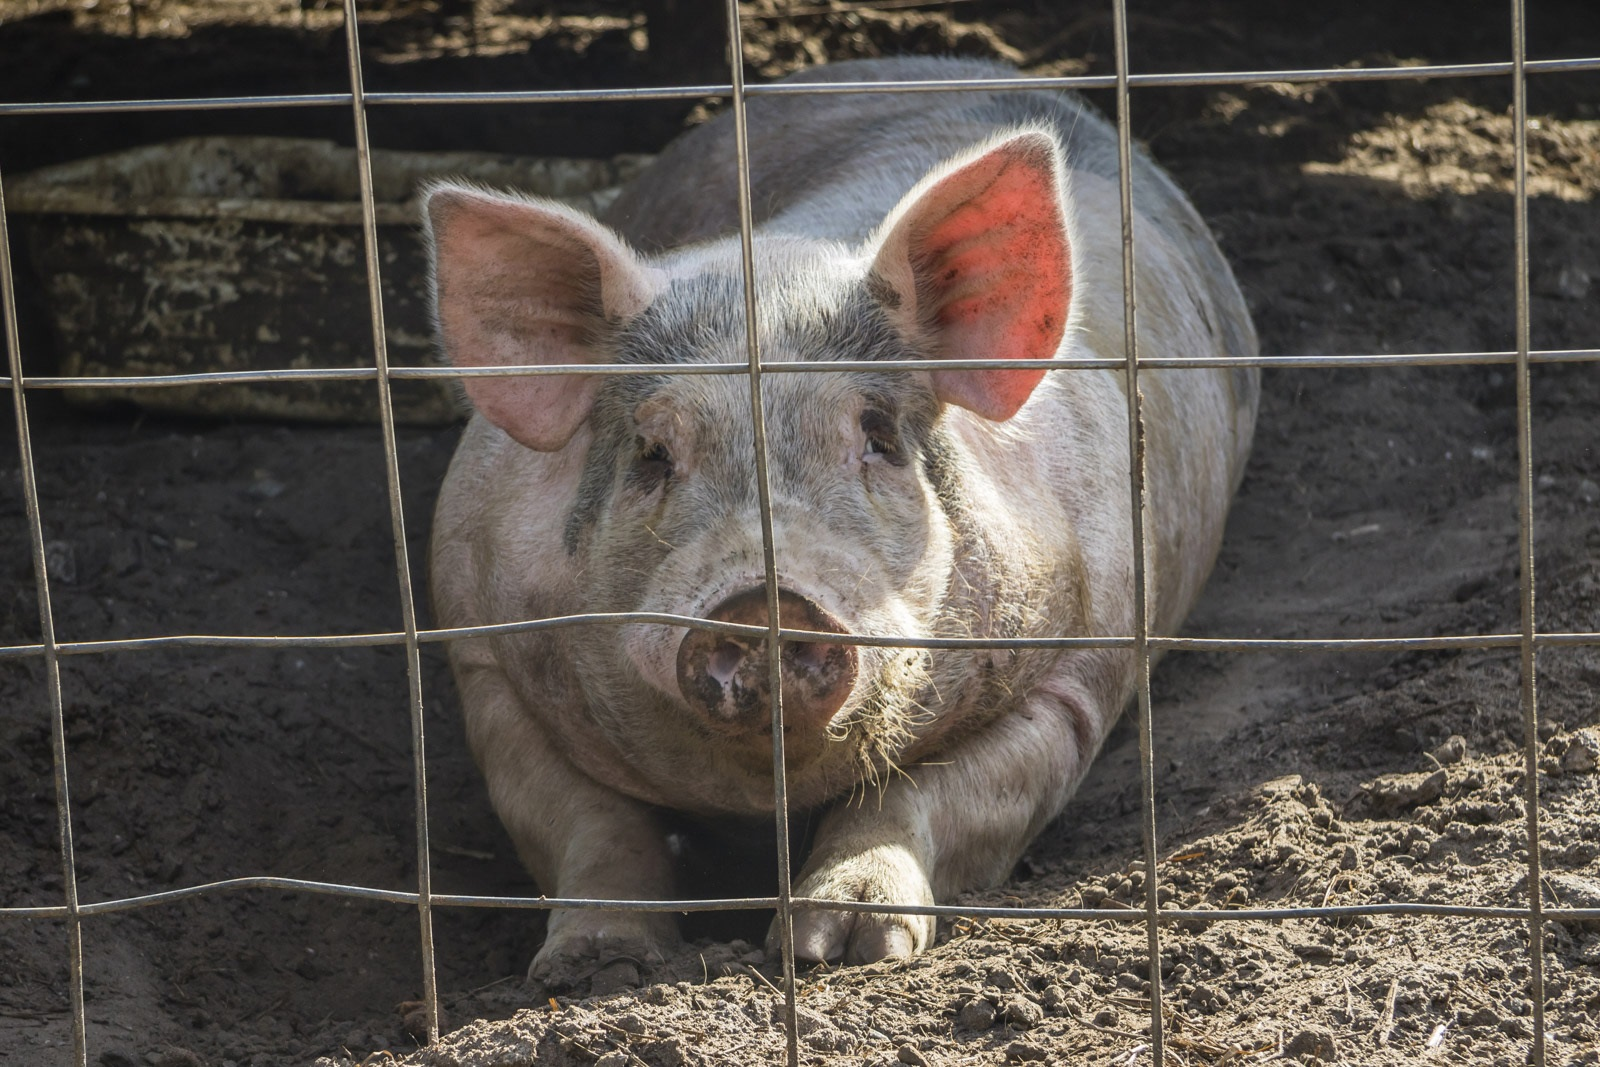 Pig behind a cage on the property